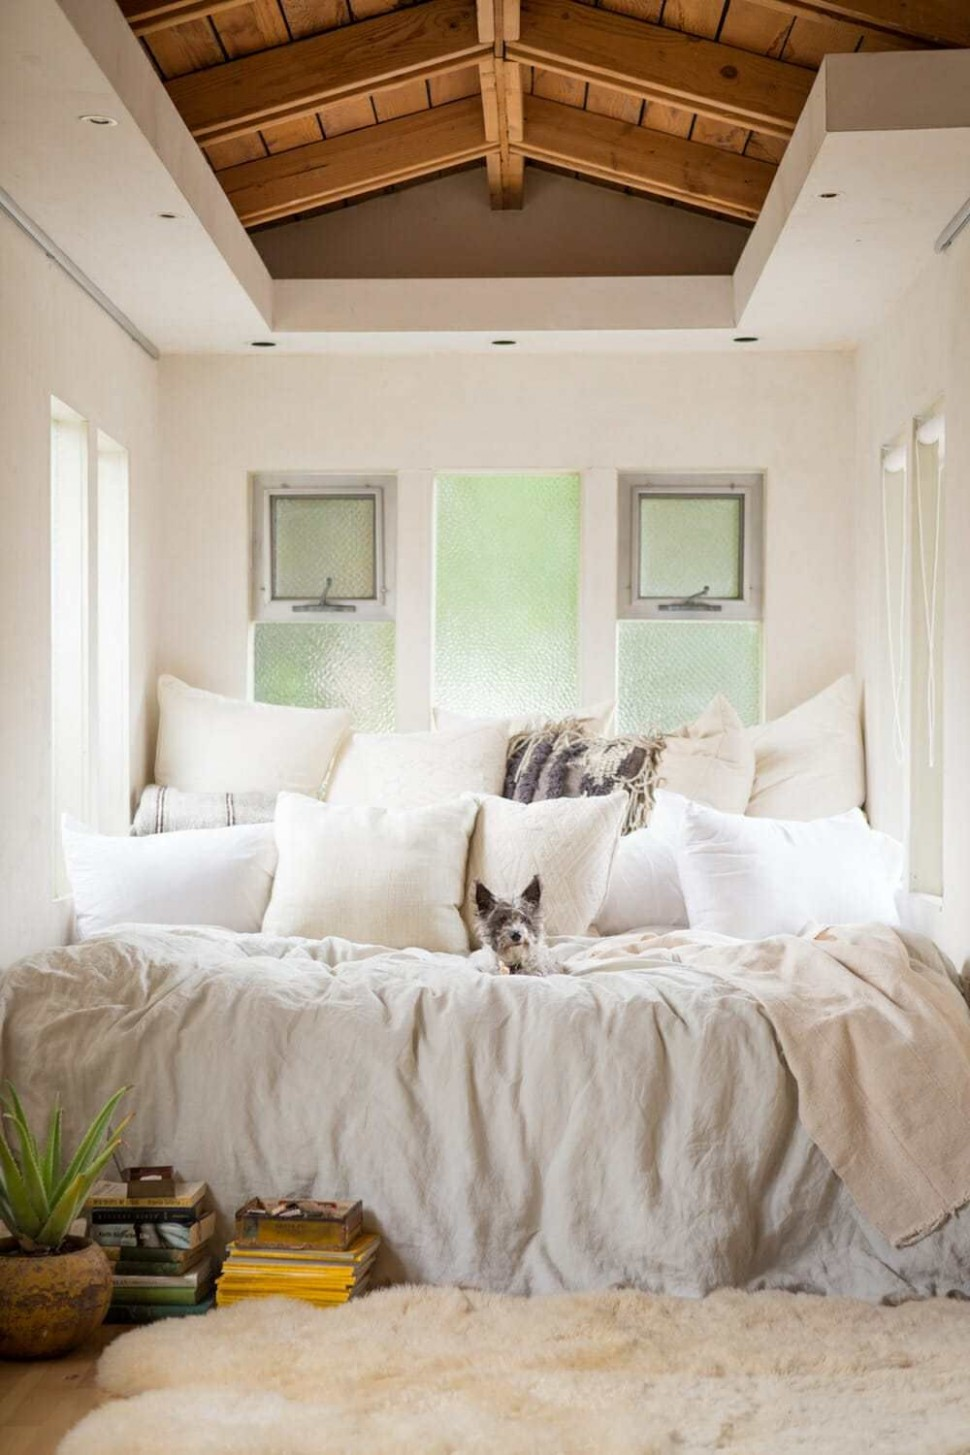 8 Small Bedroom Design Ideas - How to Decorate a Small Bedroom - Small Bedroom Ideas Queen Bed